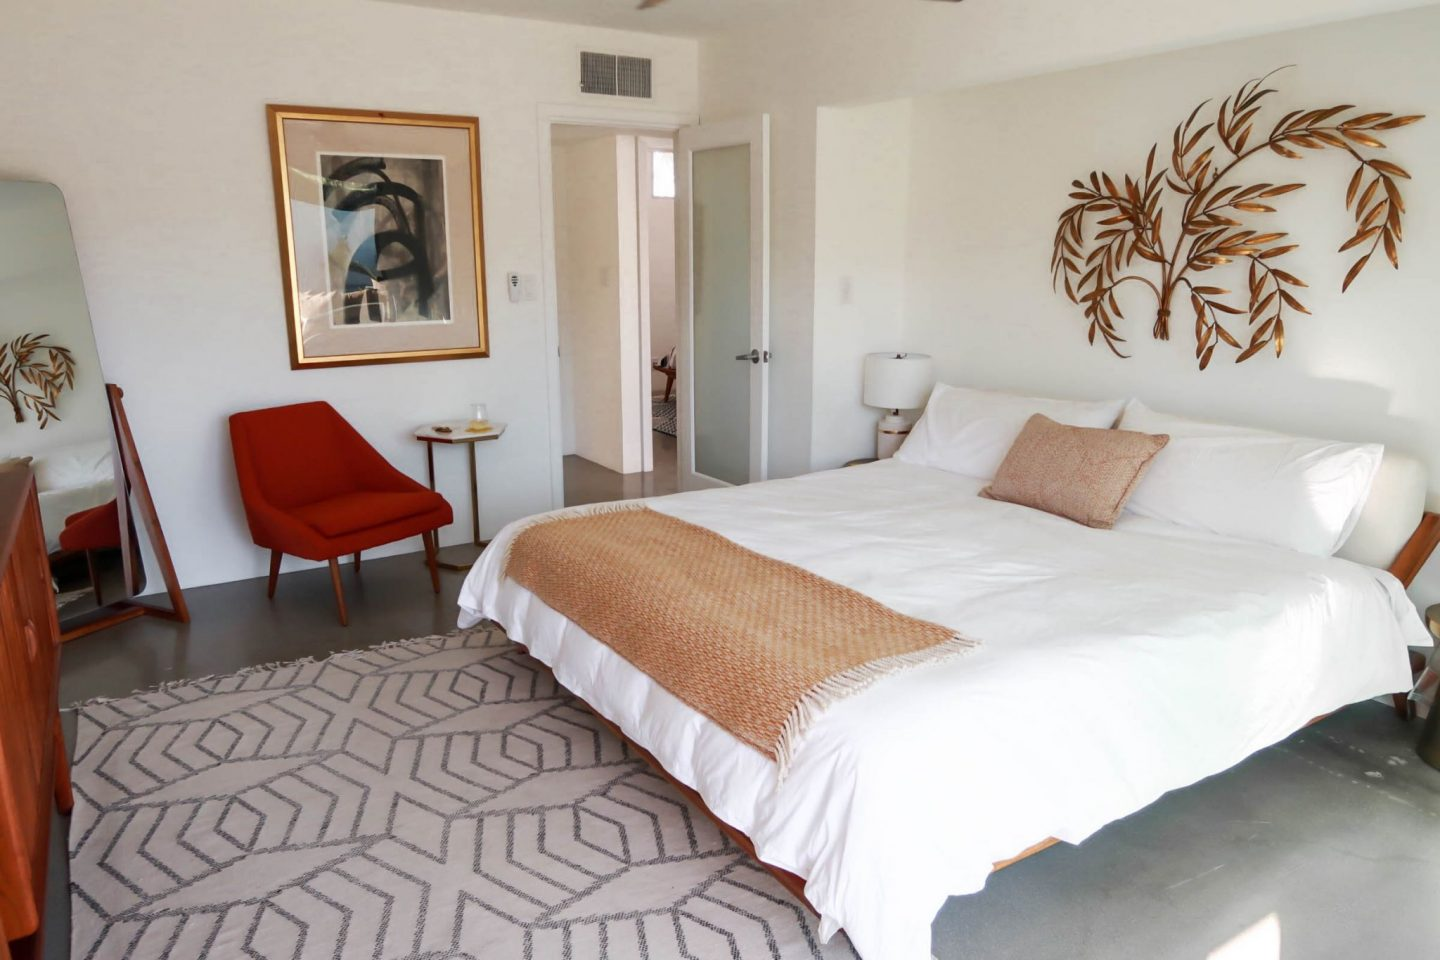 modern bedroom - Palm Springs - Lauren Schwaiger travel blog